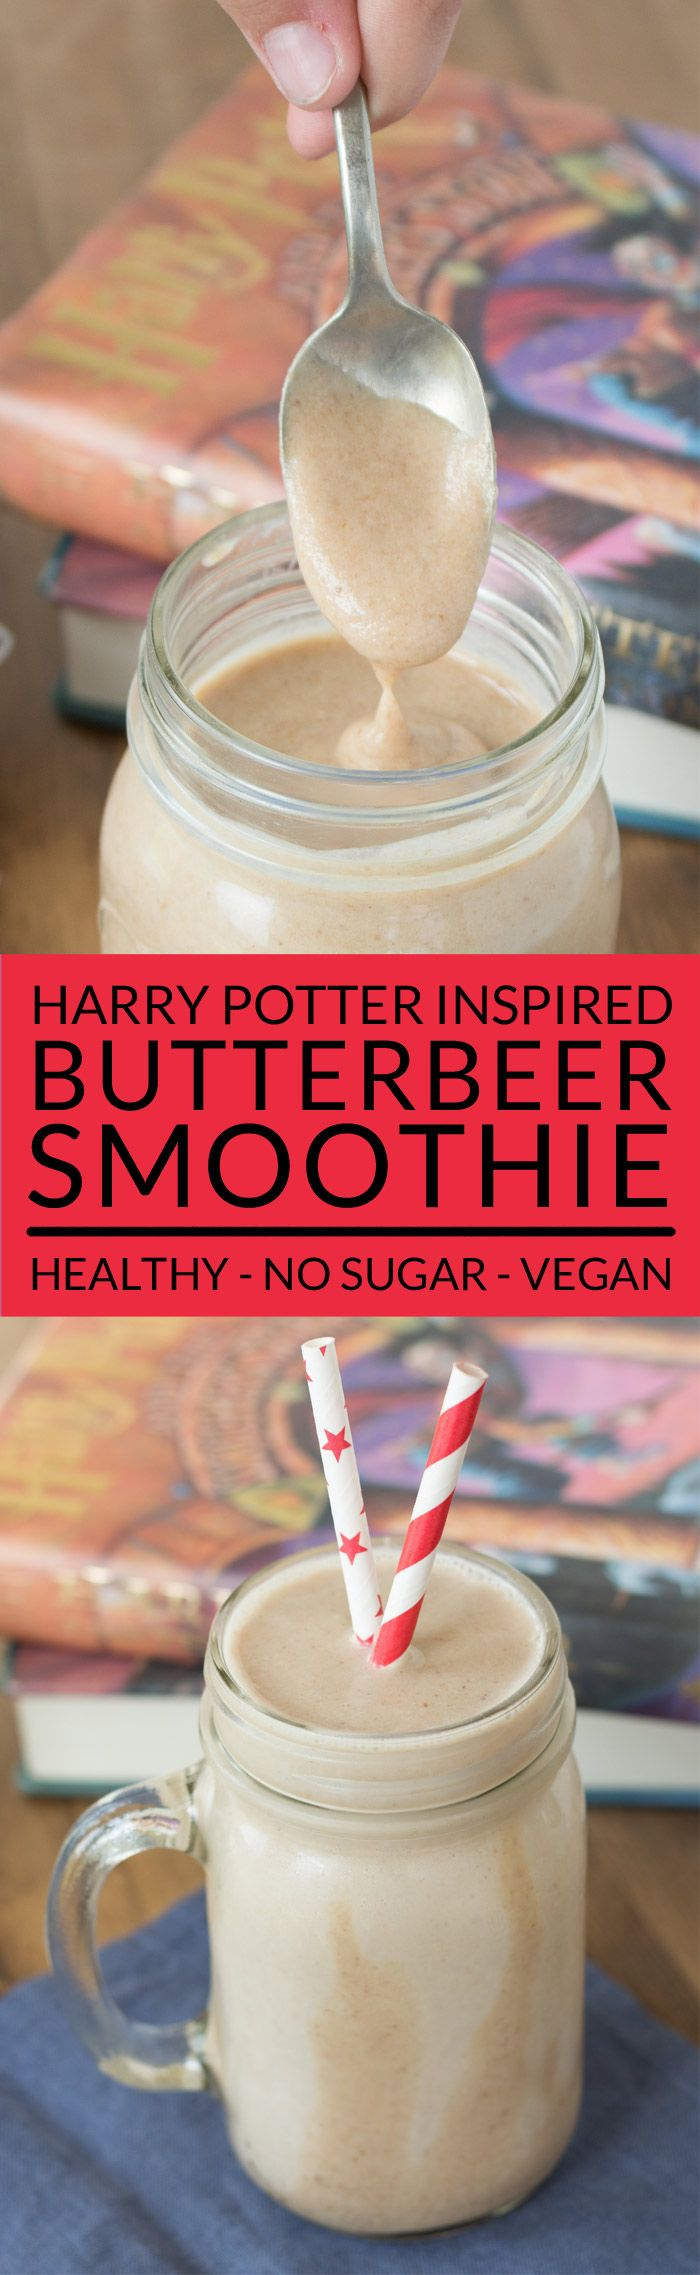 best smoothie lover images on pinterest cooking recipes